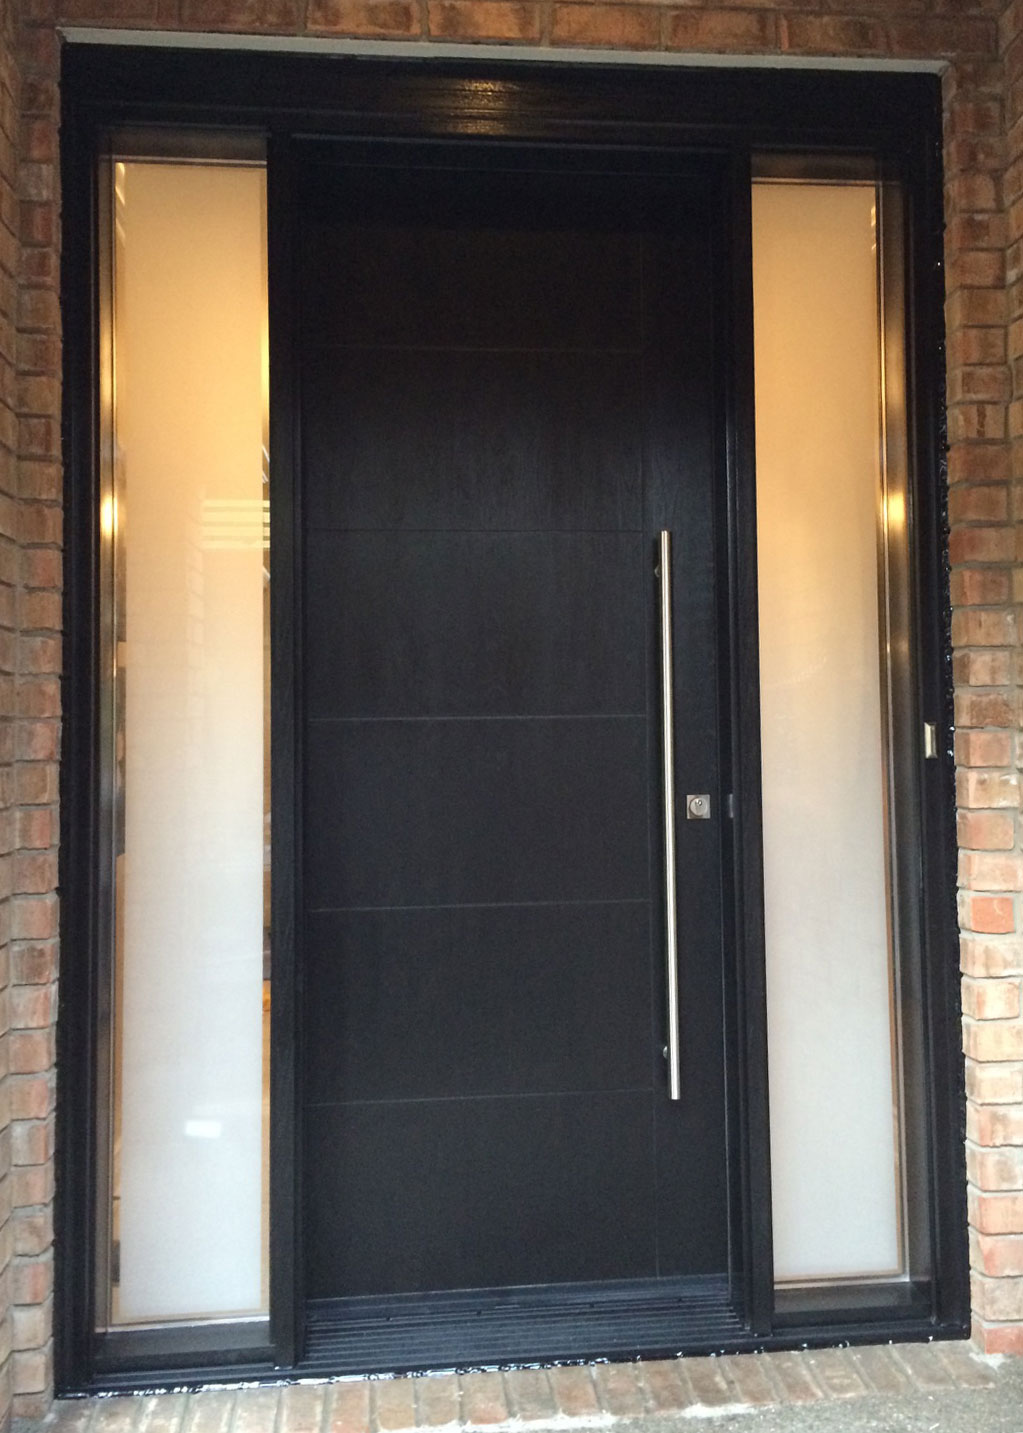 Rustic fiberglass exterior doors - Modern Rustic Woodgrain Fiberglass Entry Door With 2 Frosted Side Lites And Multi Point Locks Installed In King City